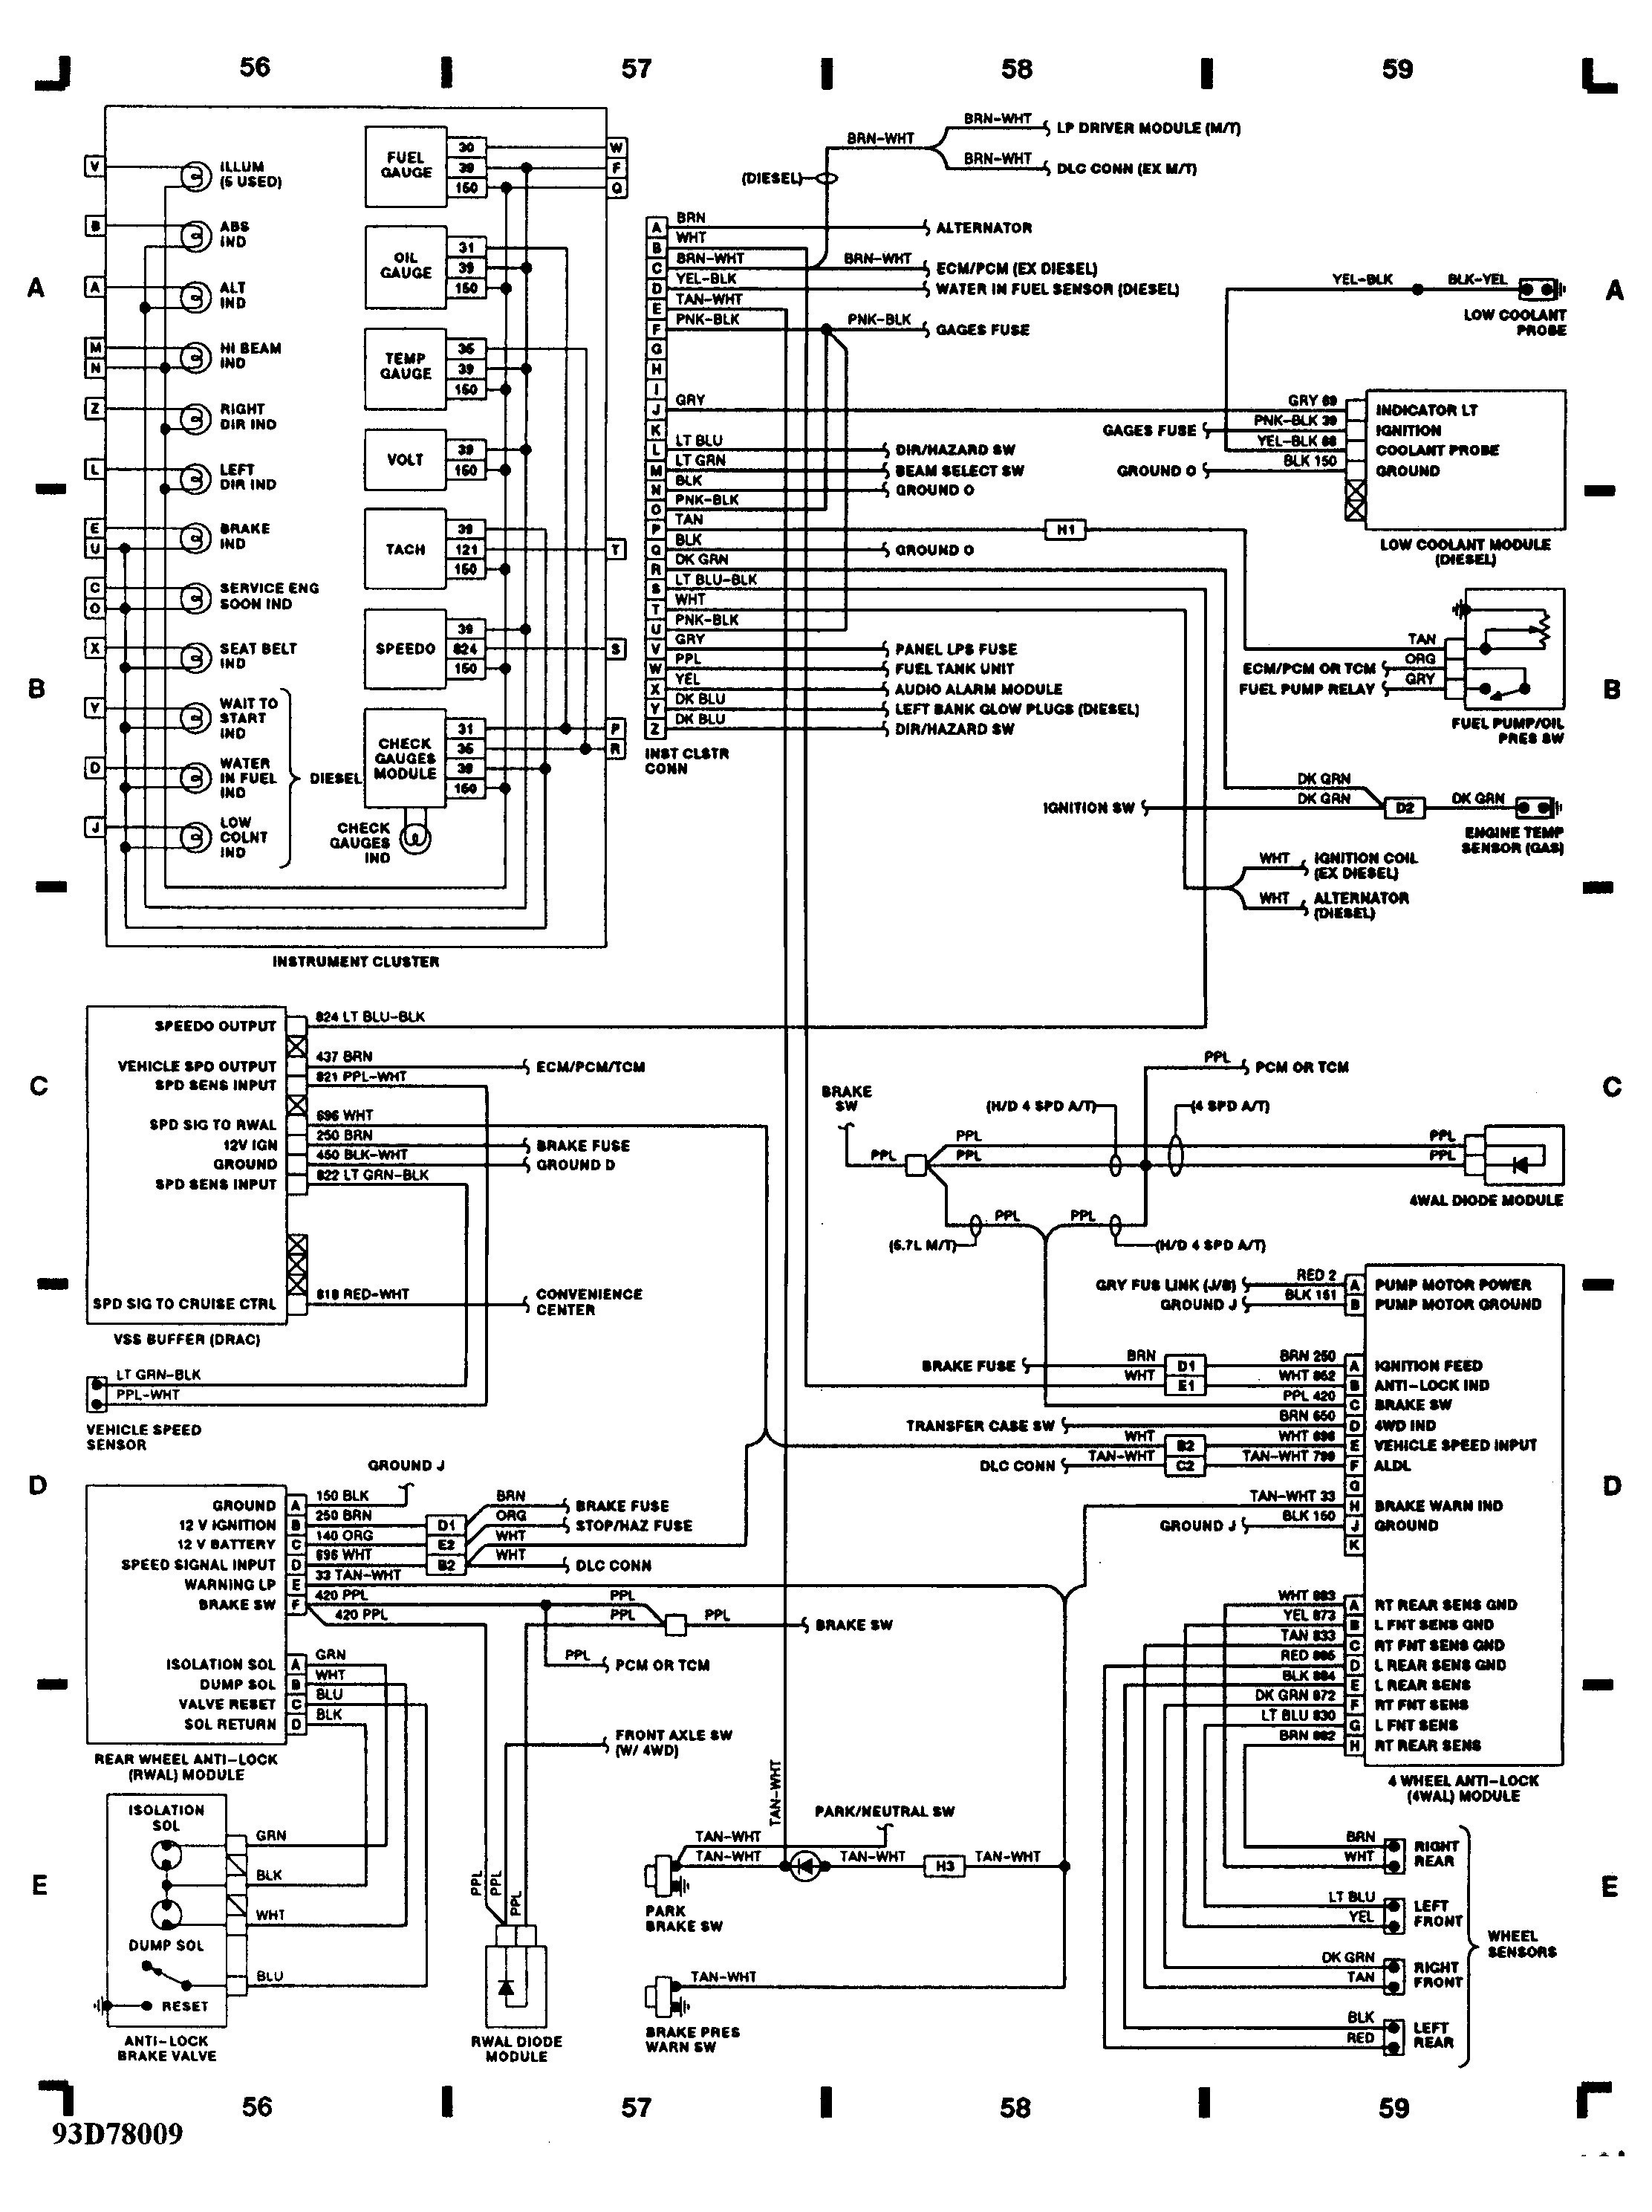 1995 Chevy Tahoe Engine Wiring Diagram Not Lossing Data Schema Rh 27 Danielmeidl De